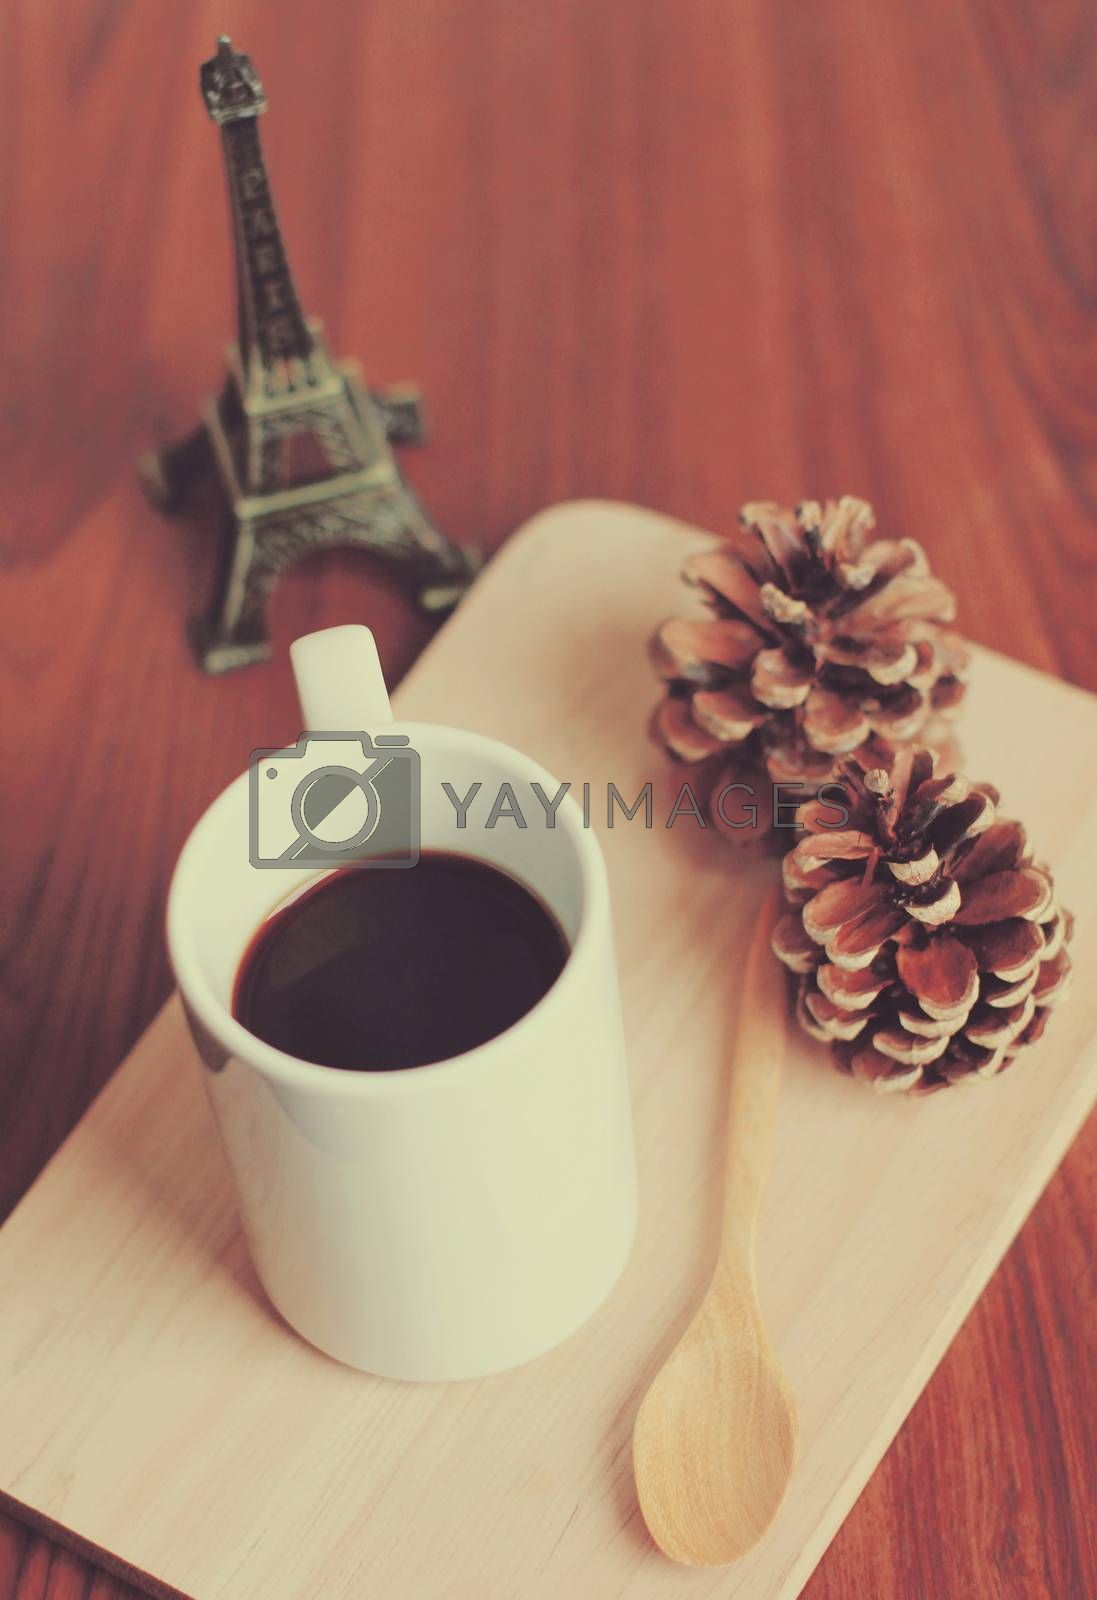 Black coffee and spoon on wooden tray with pine cone, retro filter effect